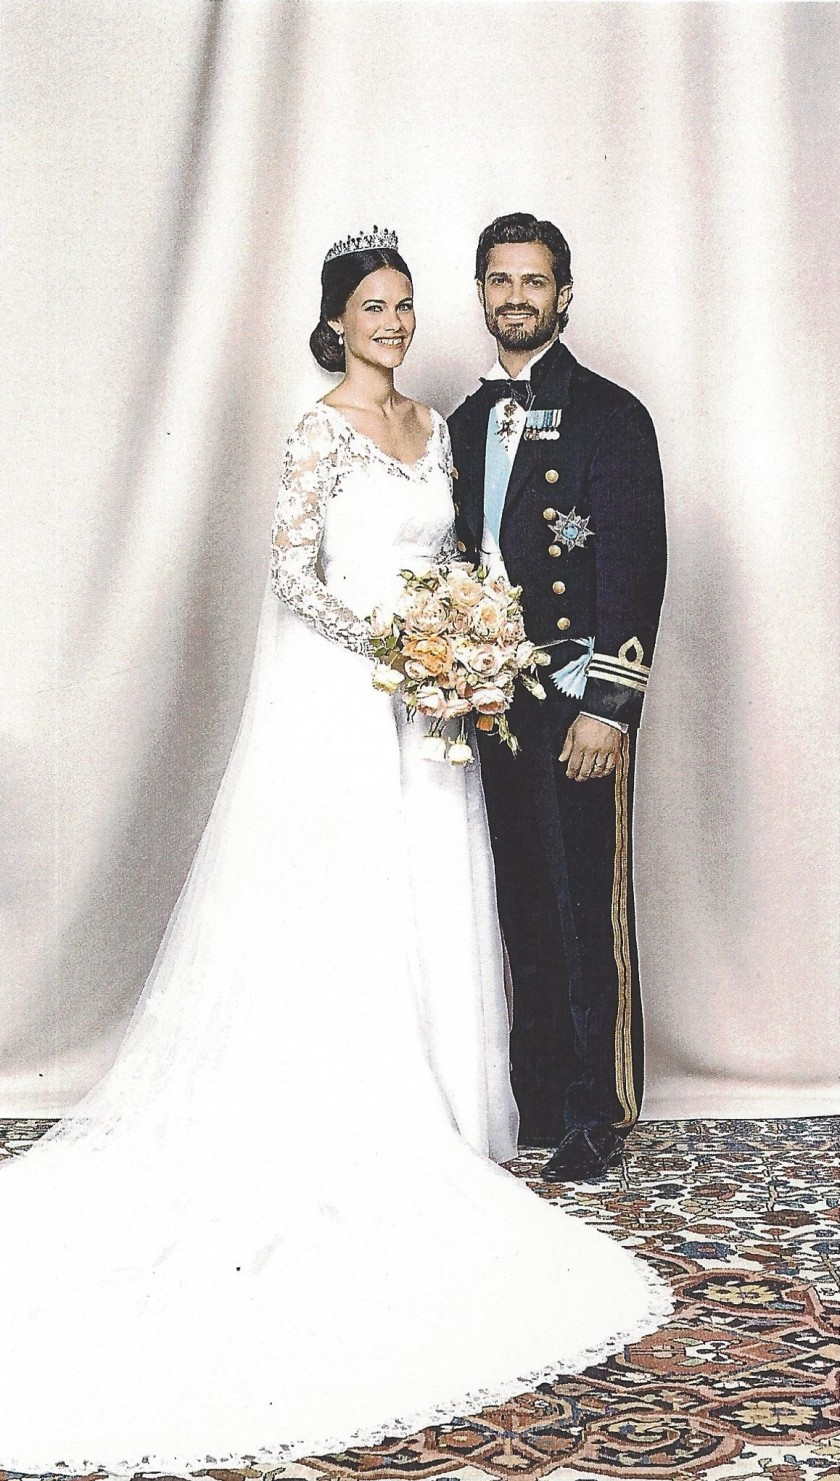 Sophia and Carl Philip Wedding Card Picture close up